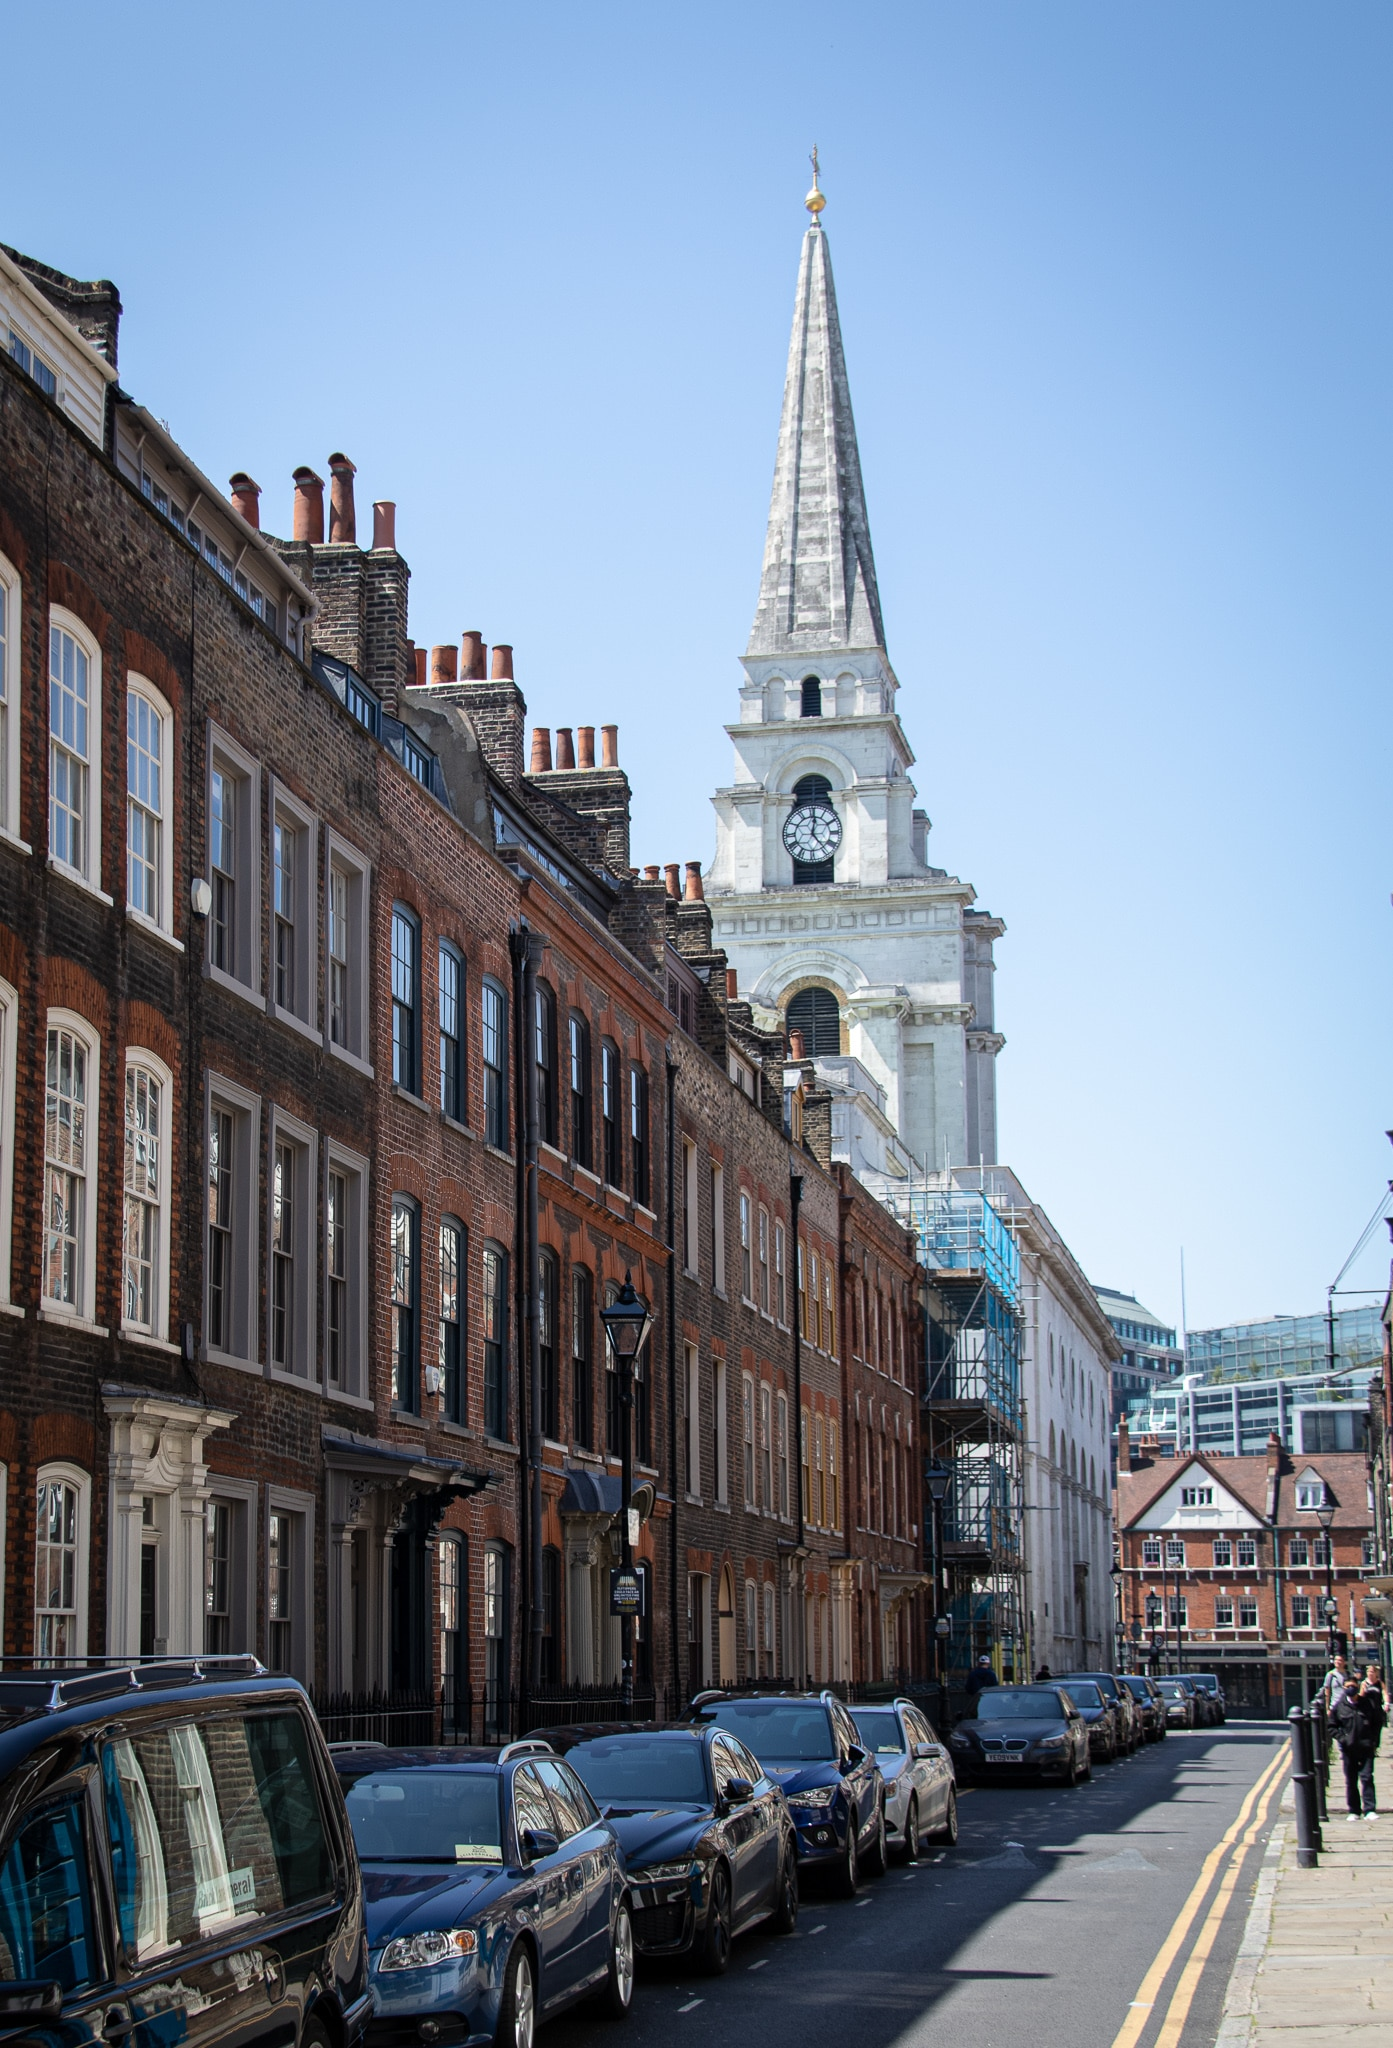 Christ Church in Spitalfields towers over the 19th century brick housing in the streets close to Brick Lane.